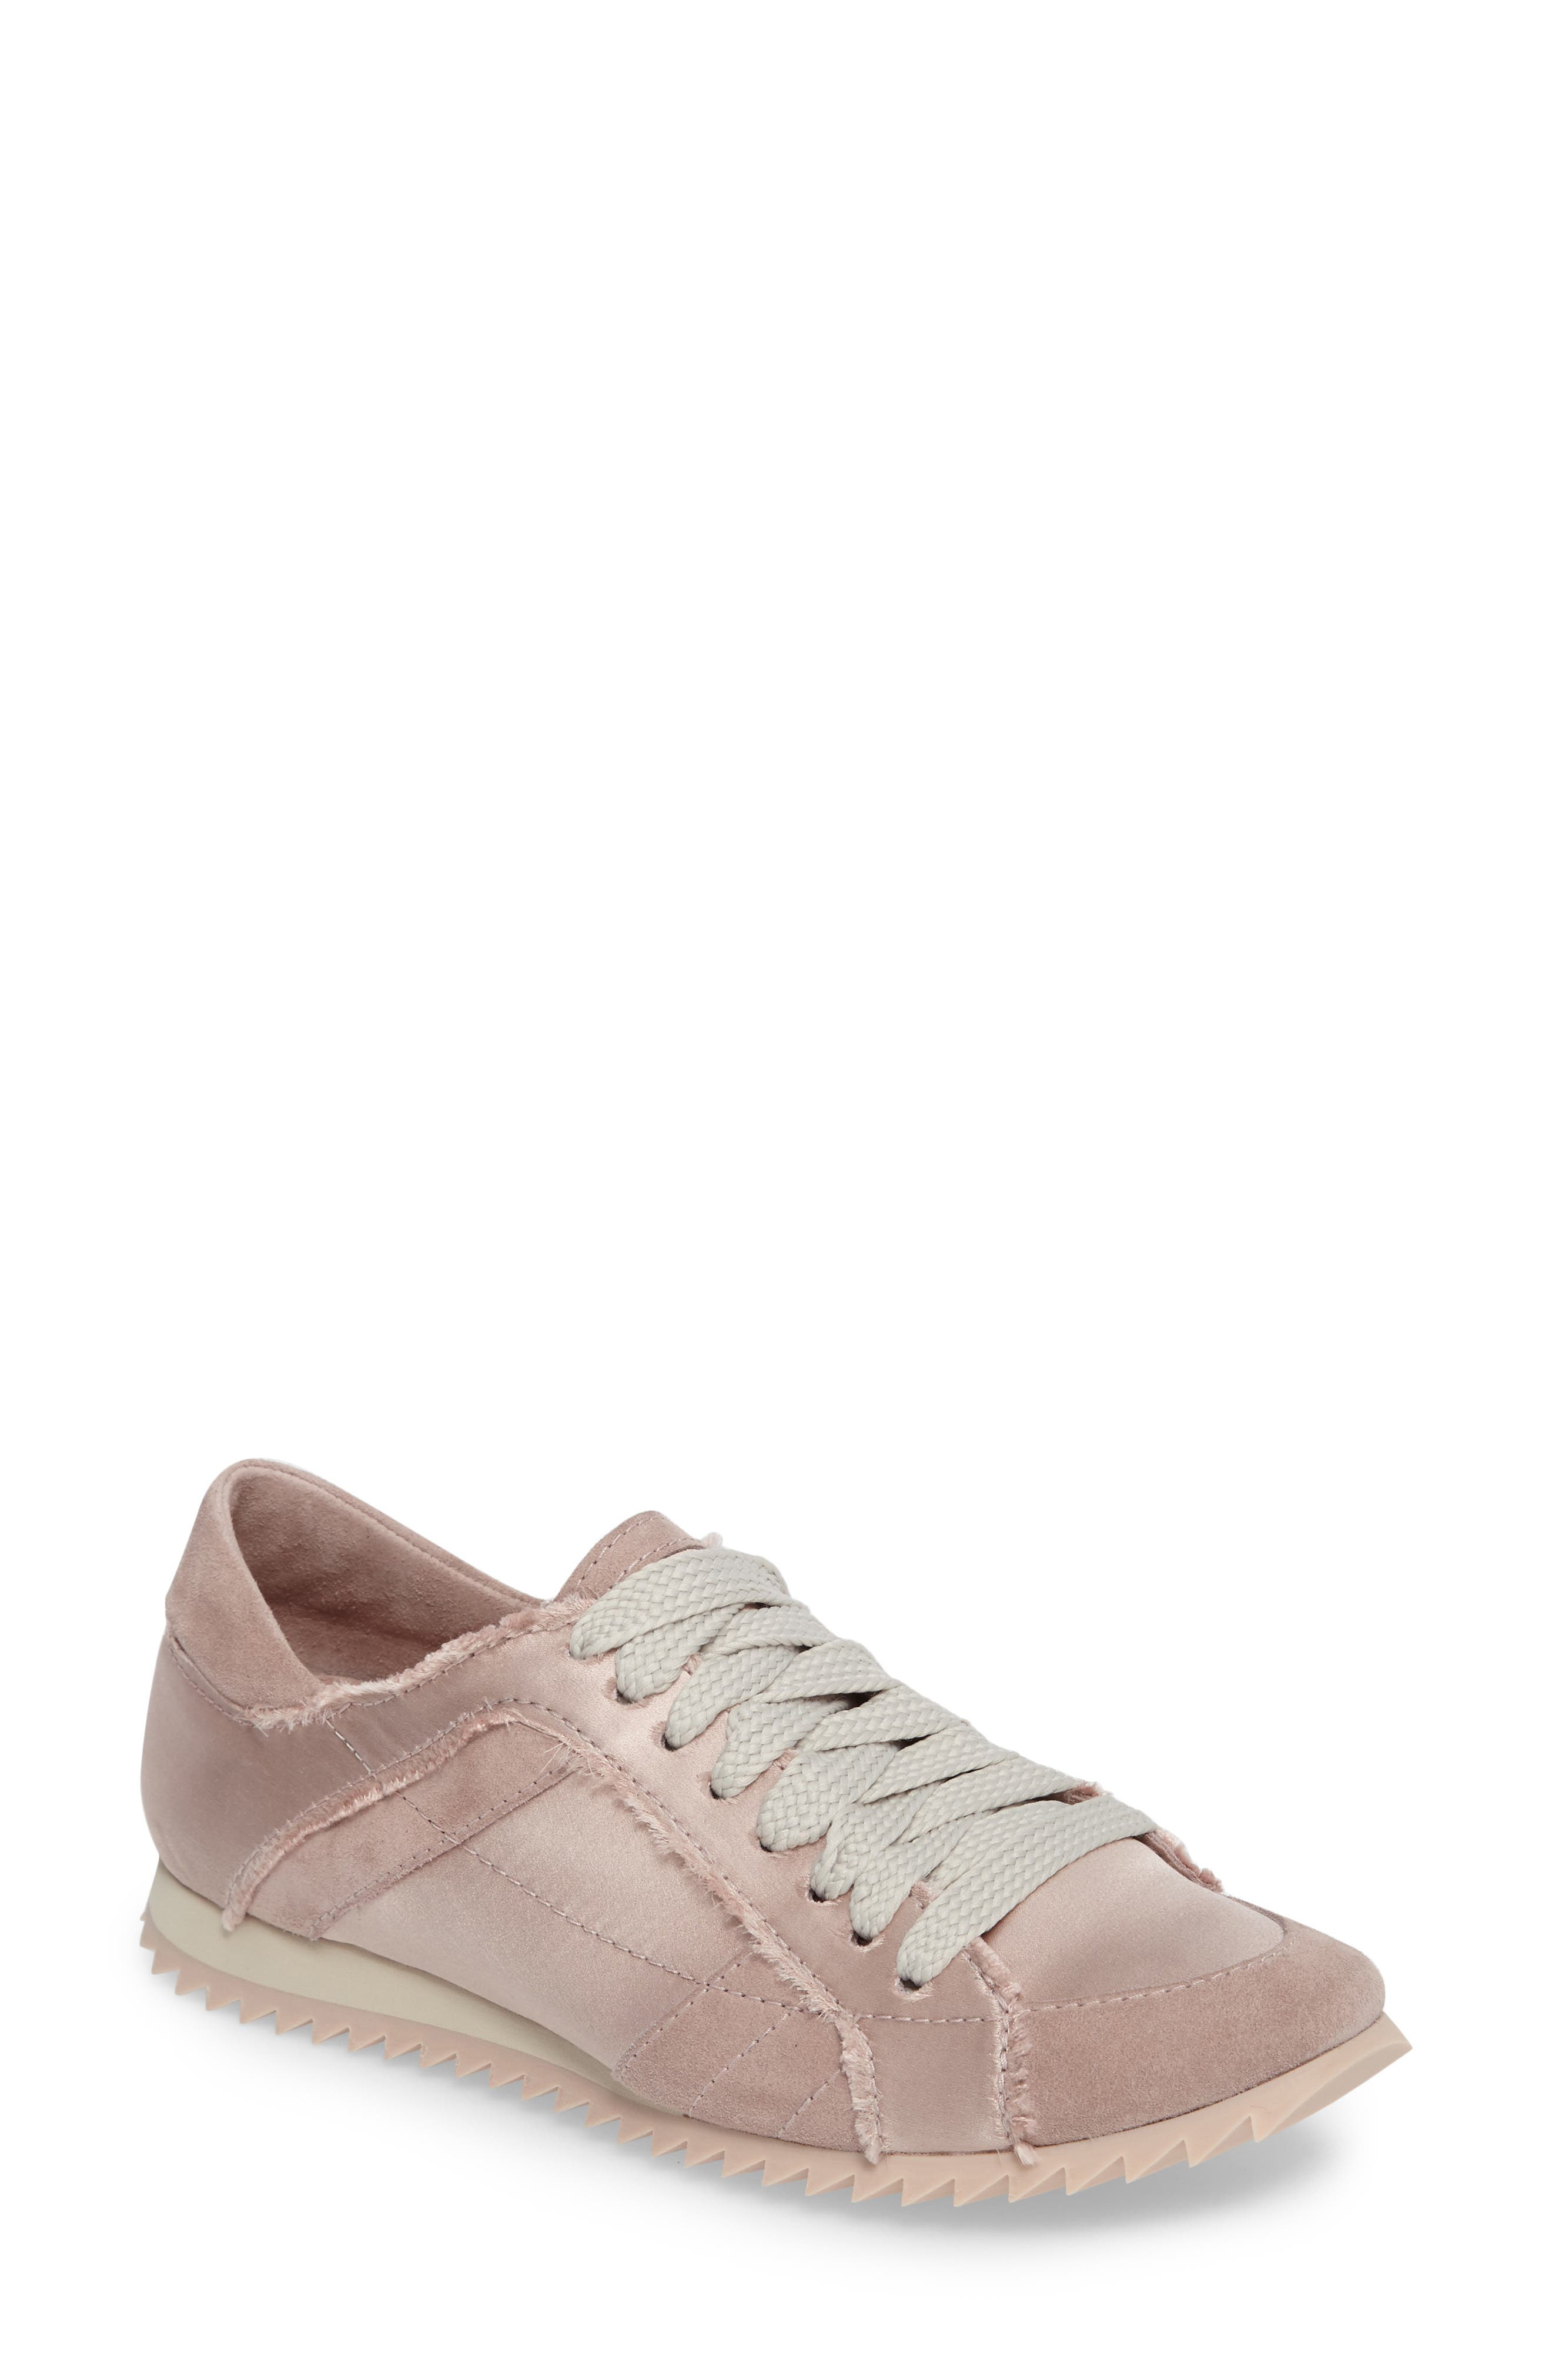 Cristina Trainer Sneaker,                         Main,                         color, Light Pink Satin